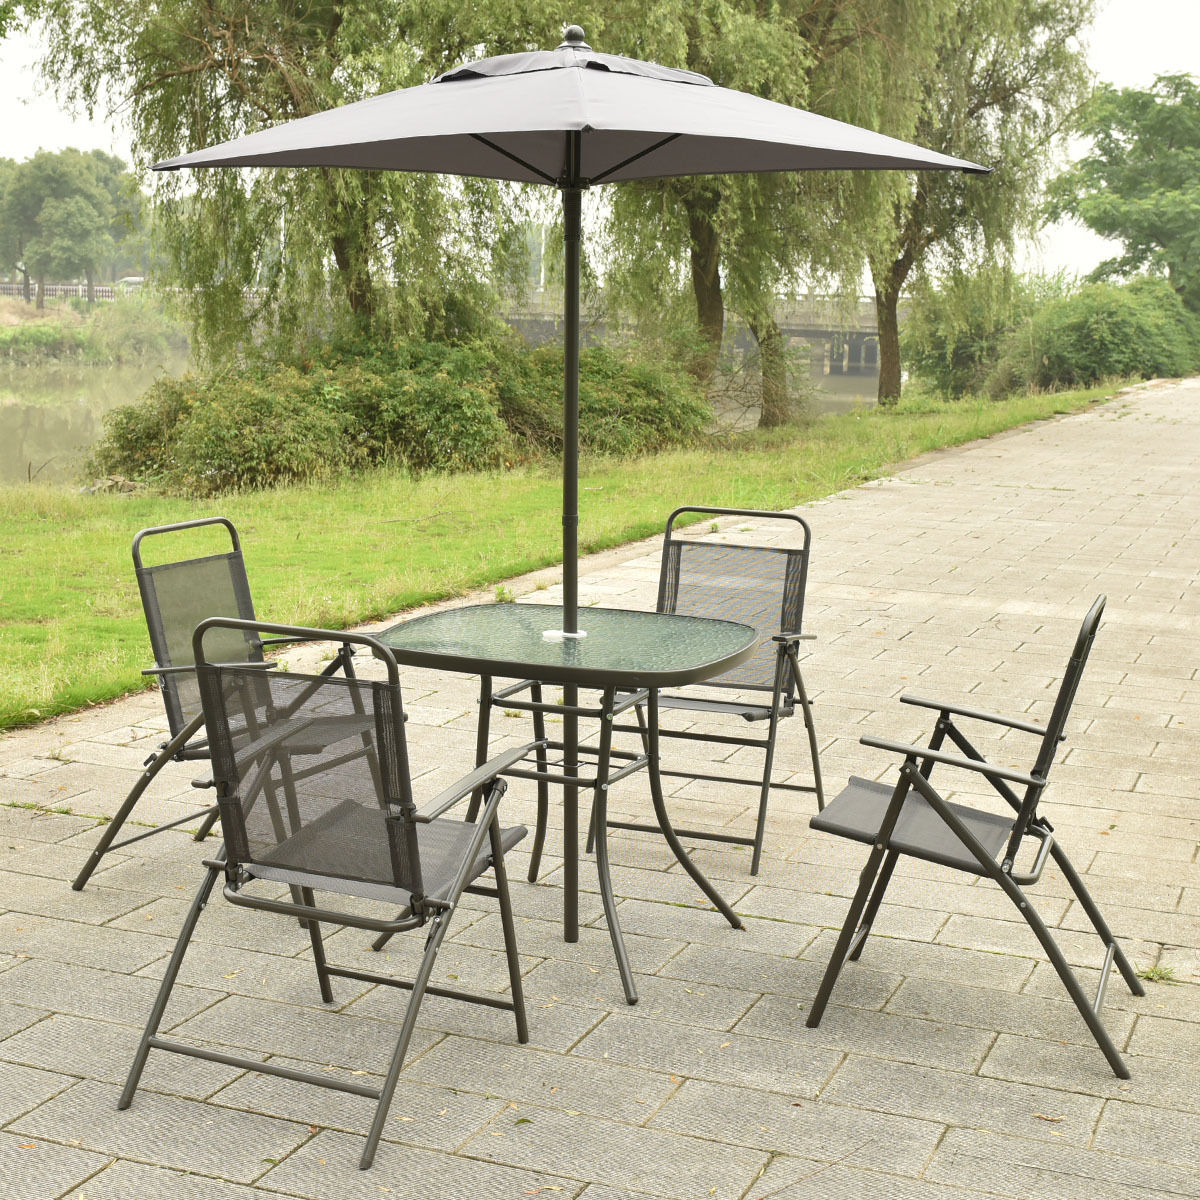 Charmant 6 Pcs Patio Folding Furniture Set With An Umbrella